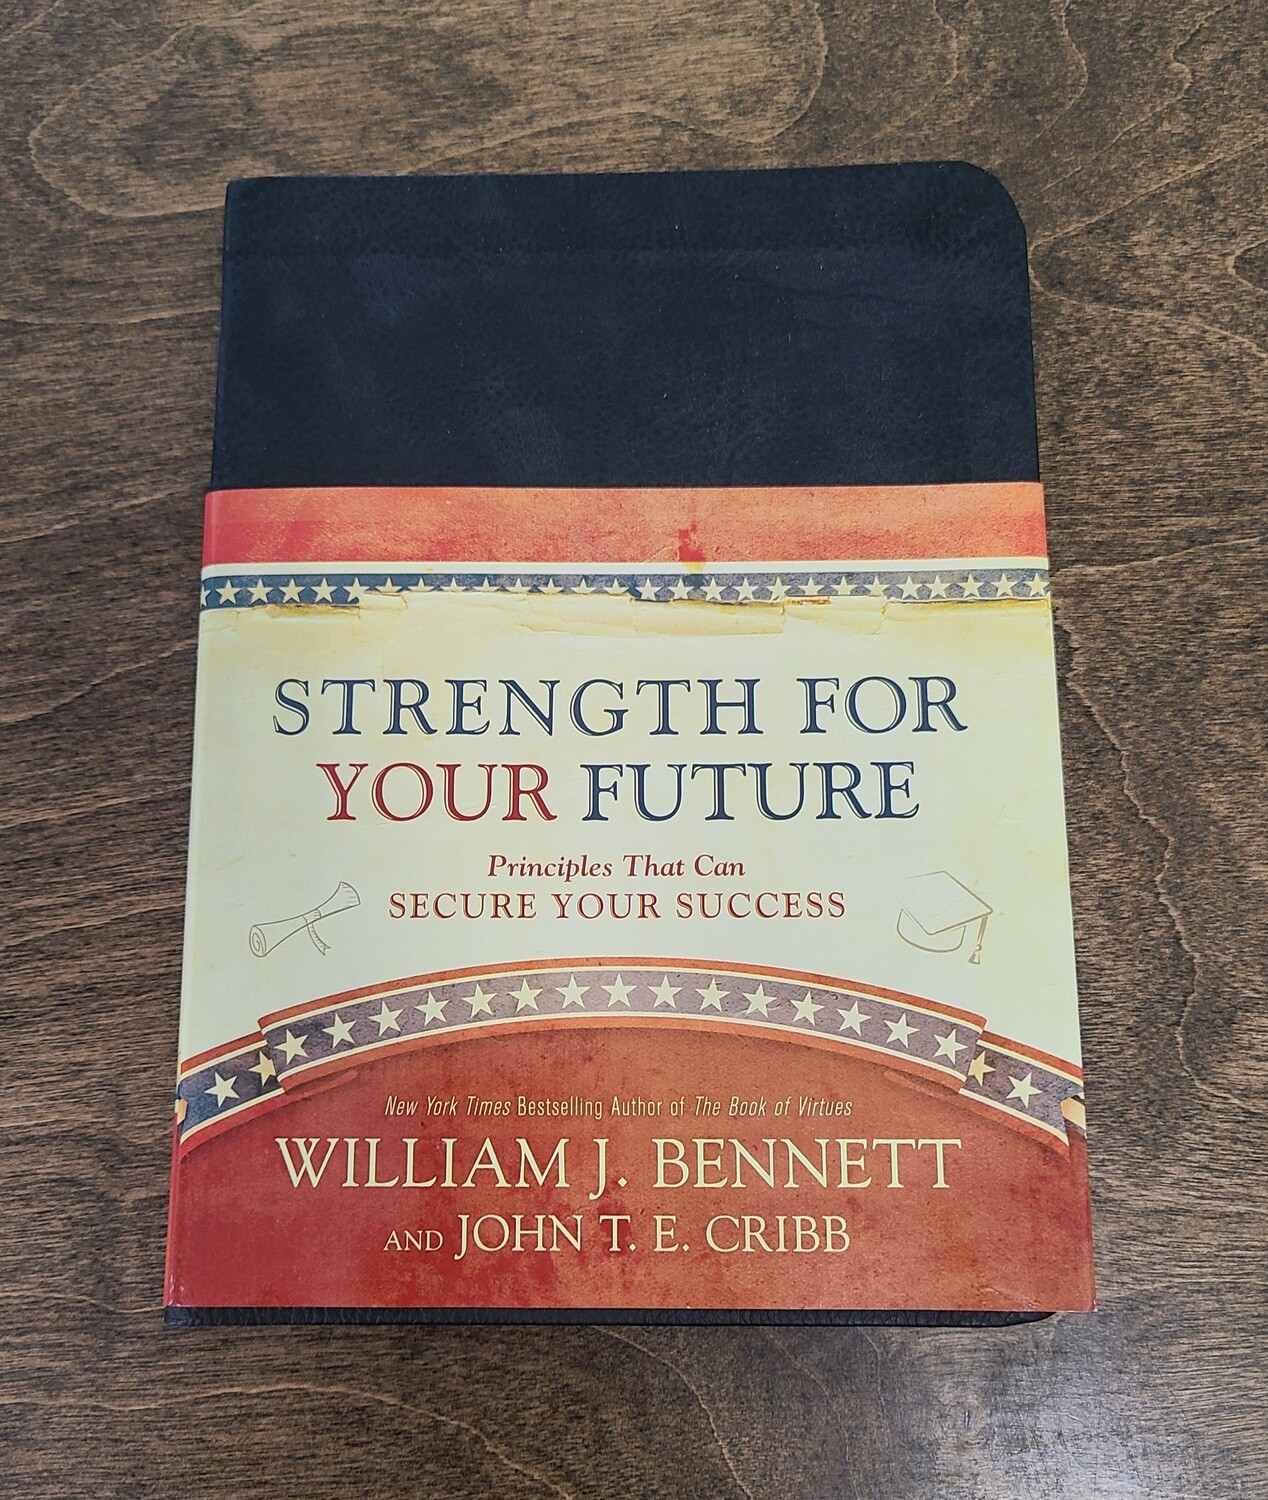 Strength for Your Future by William J. Bennett and John T. E. Cribb